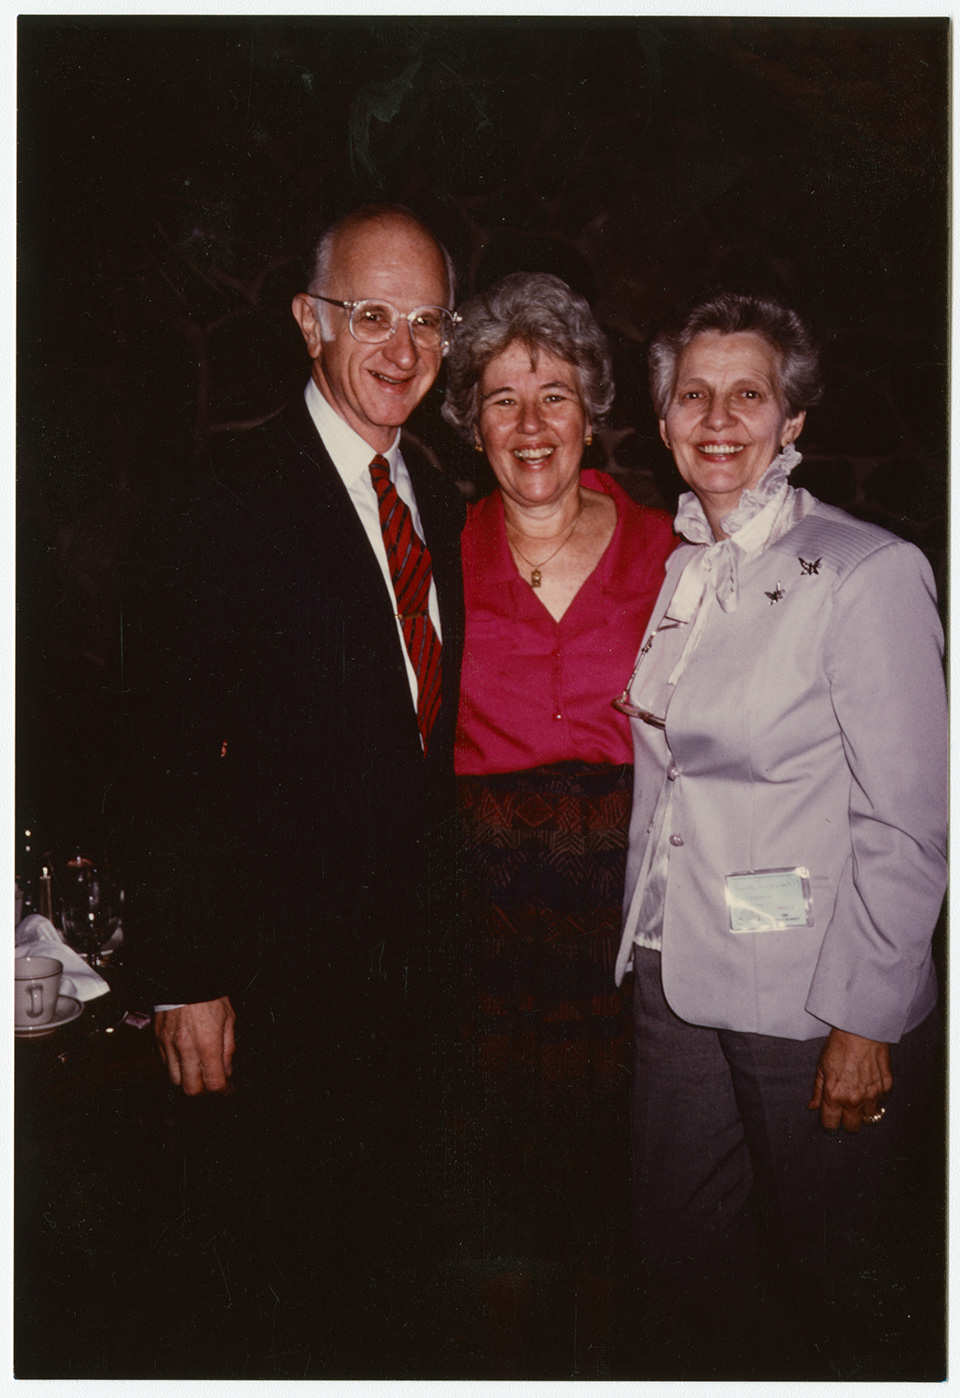 R.S. Mendelsohn standing with Rita Mendelsohn and Rosalie Tarpening, a midwife on whose behalf he testified in in court, in some sort of a dining hall.